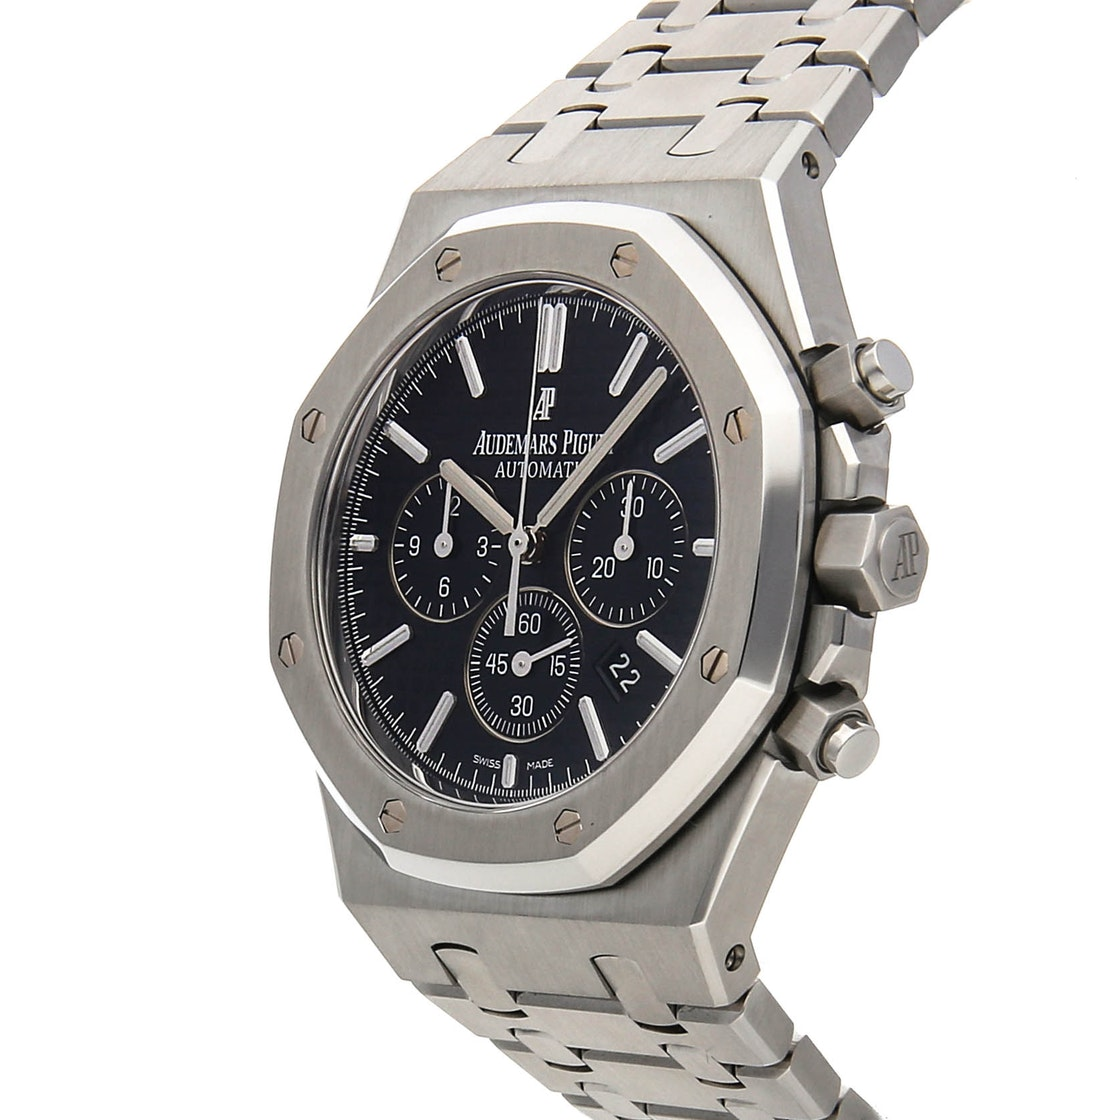 Audemars Piguet Royal Oak Chronograph 26320ST.OO.1220ST.01